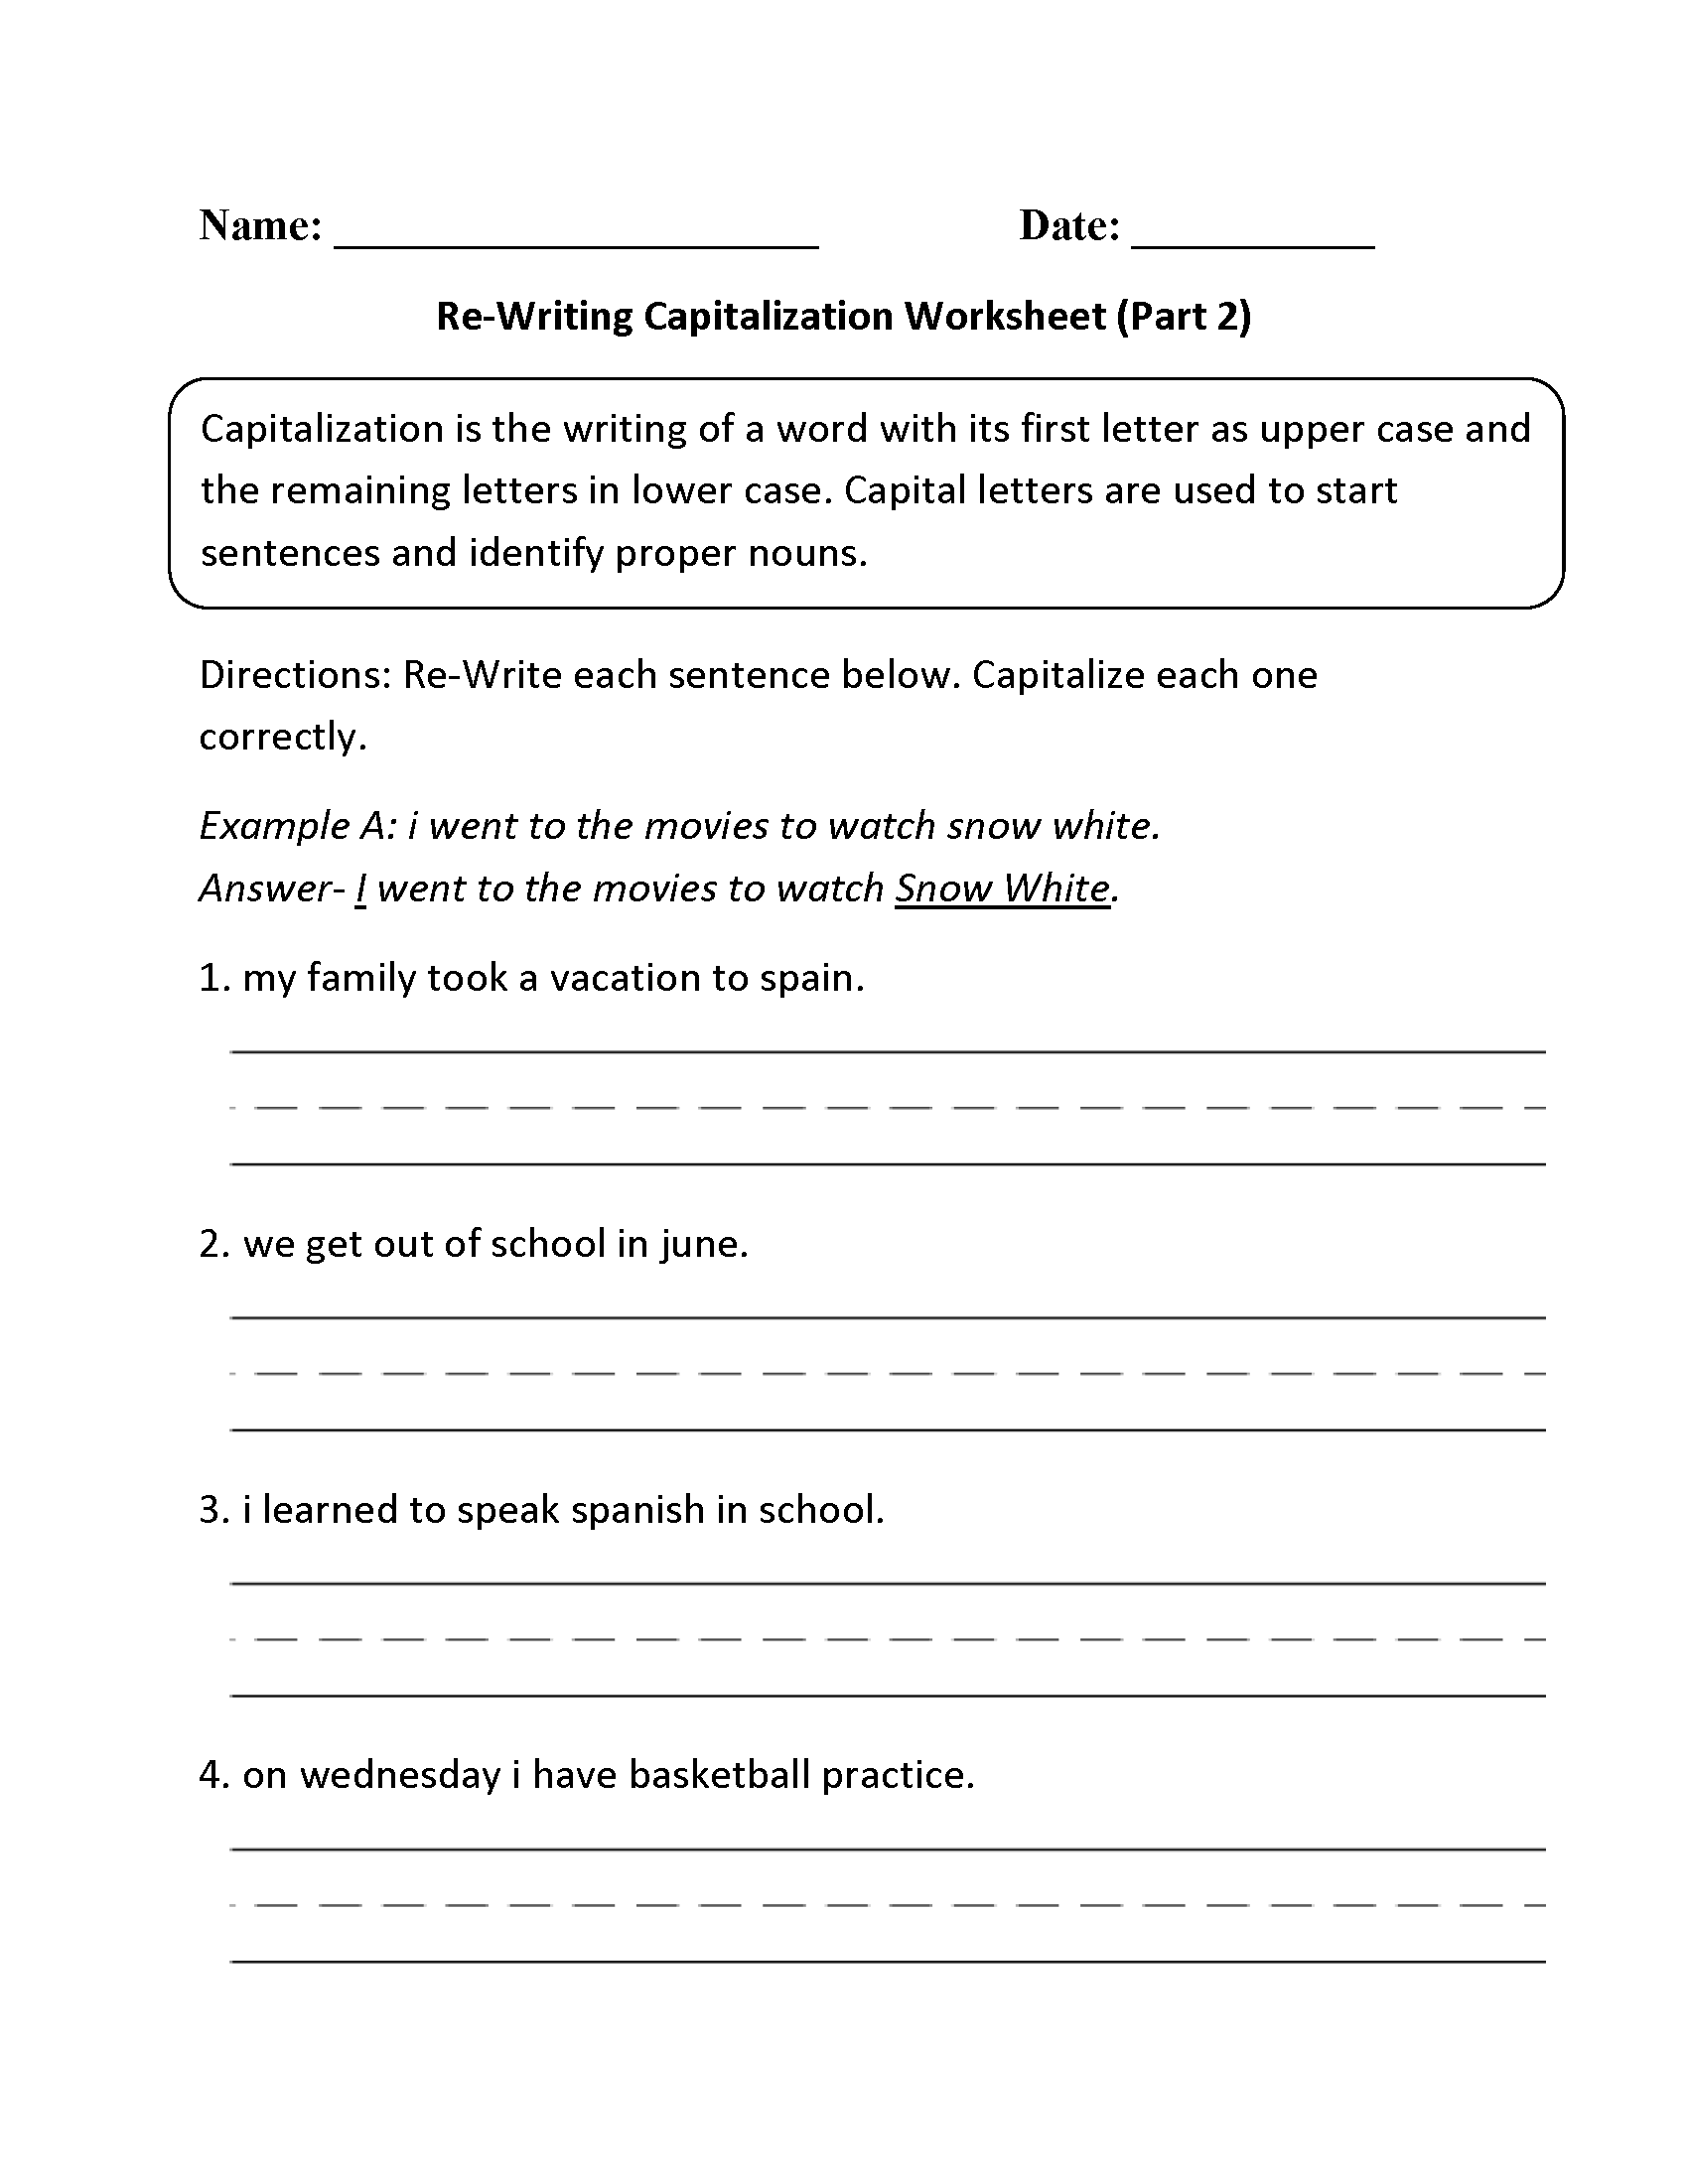 Worksheets Capitalization Worksheets englishlinx com capitalization worksheets re writing worksheet part 2